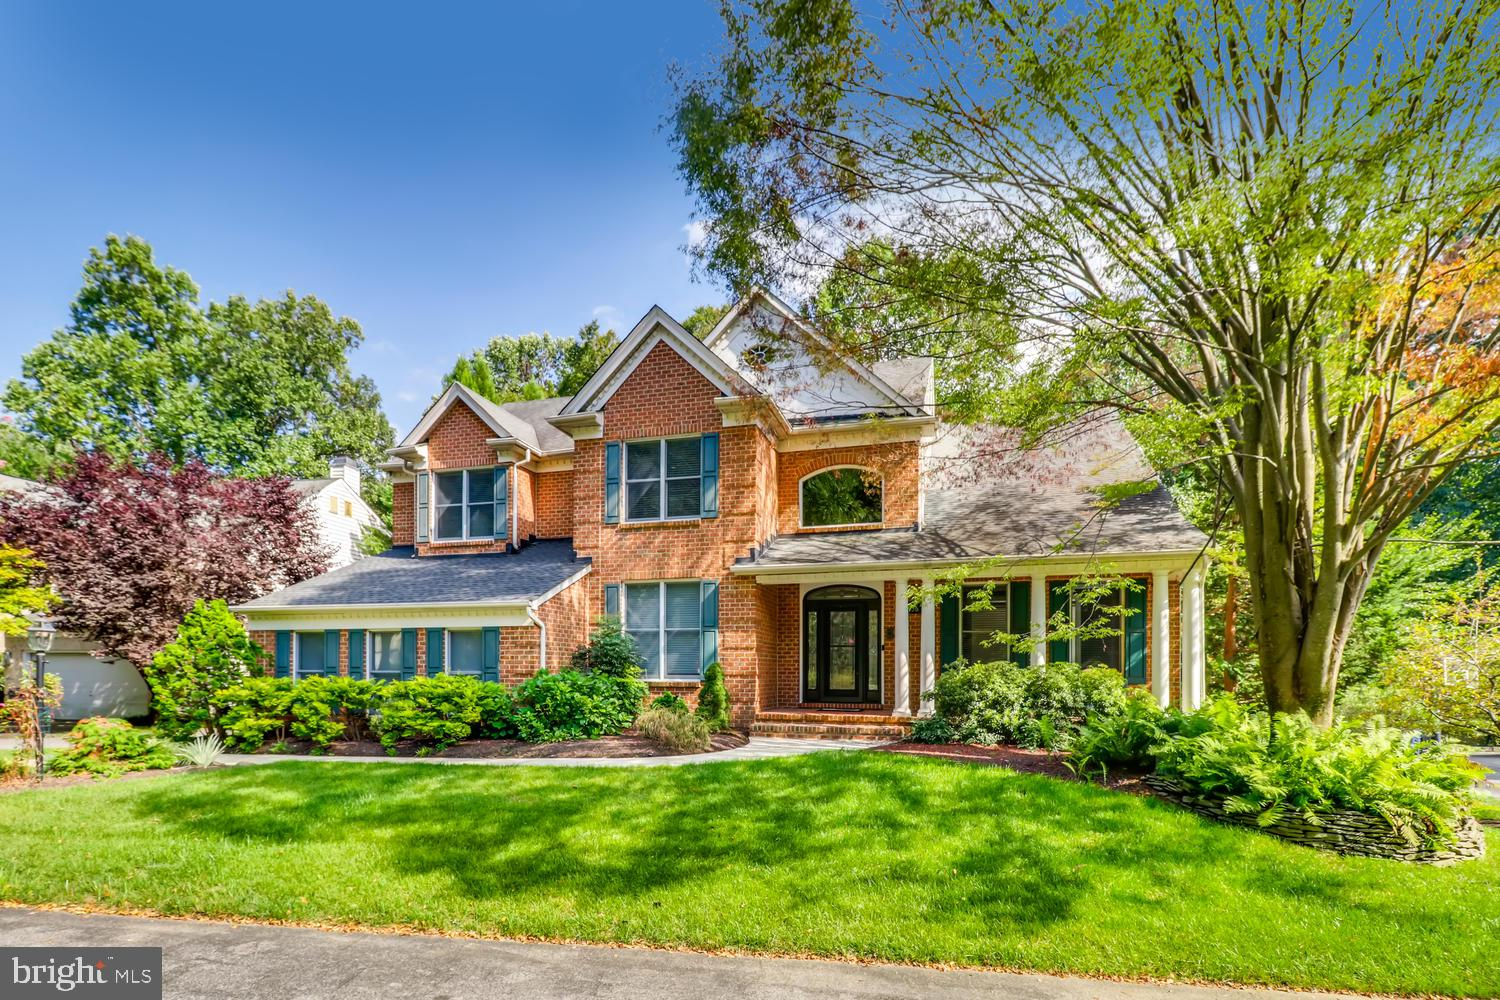 8736 MARBURG MANOR DRIVE, LUTHERVILLE TIMONIUM, MD 21093